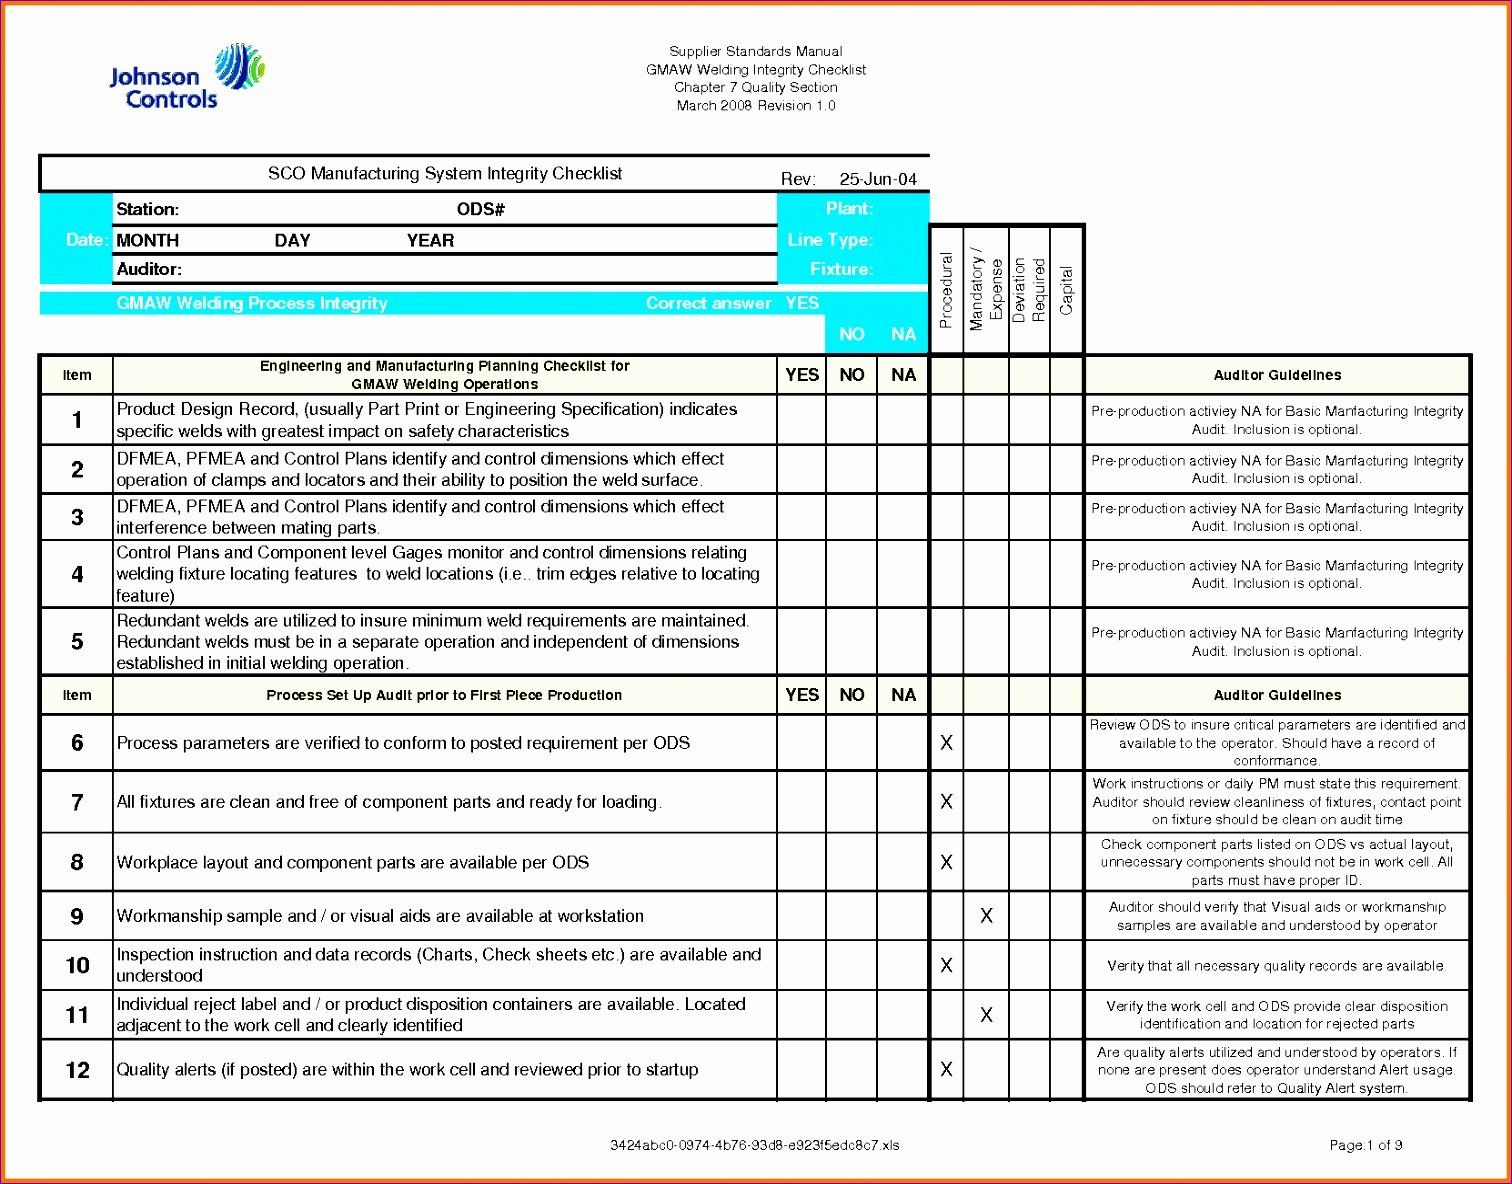 Construction Checklist Template Excel Awesome 11 Quality Checklist Template Excel Exceltemplates Checklist Template How To Plan Excel Templates Excel quality control checklist template